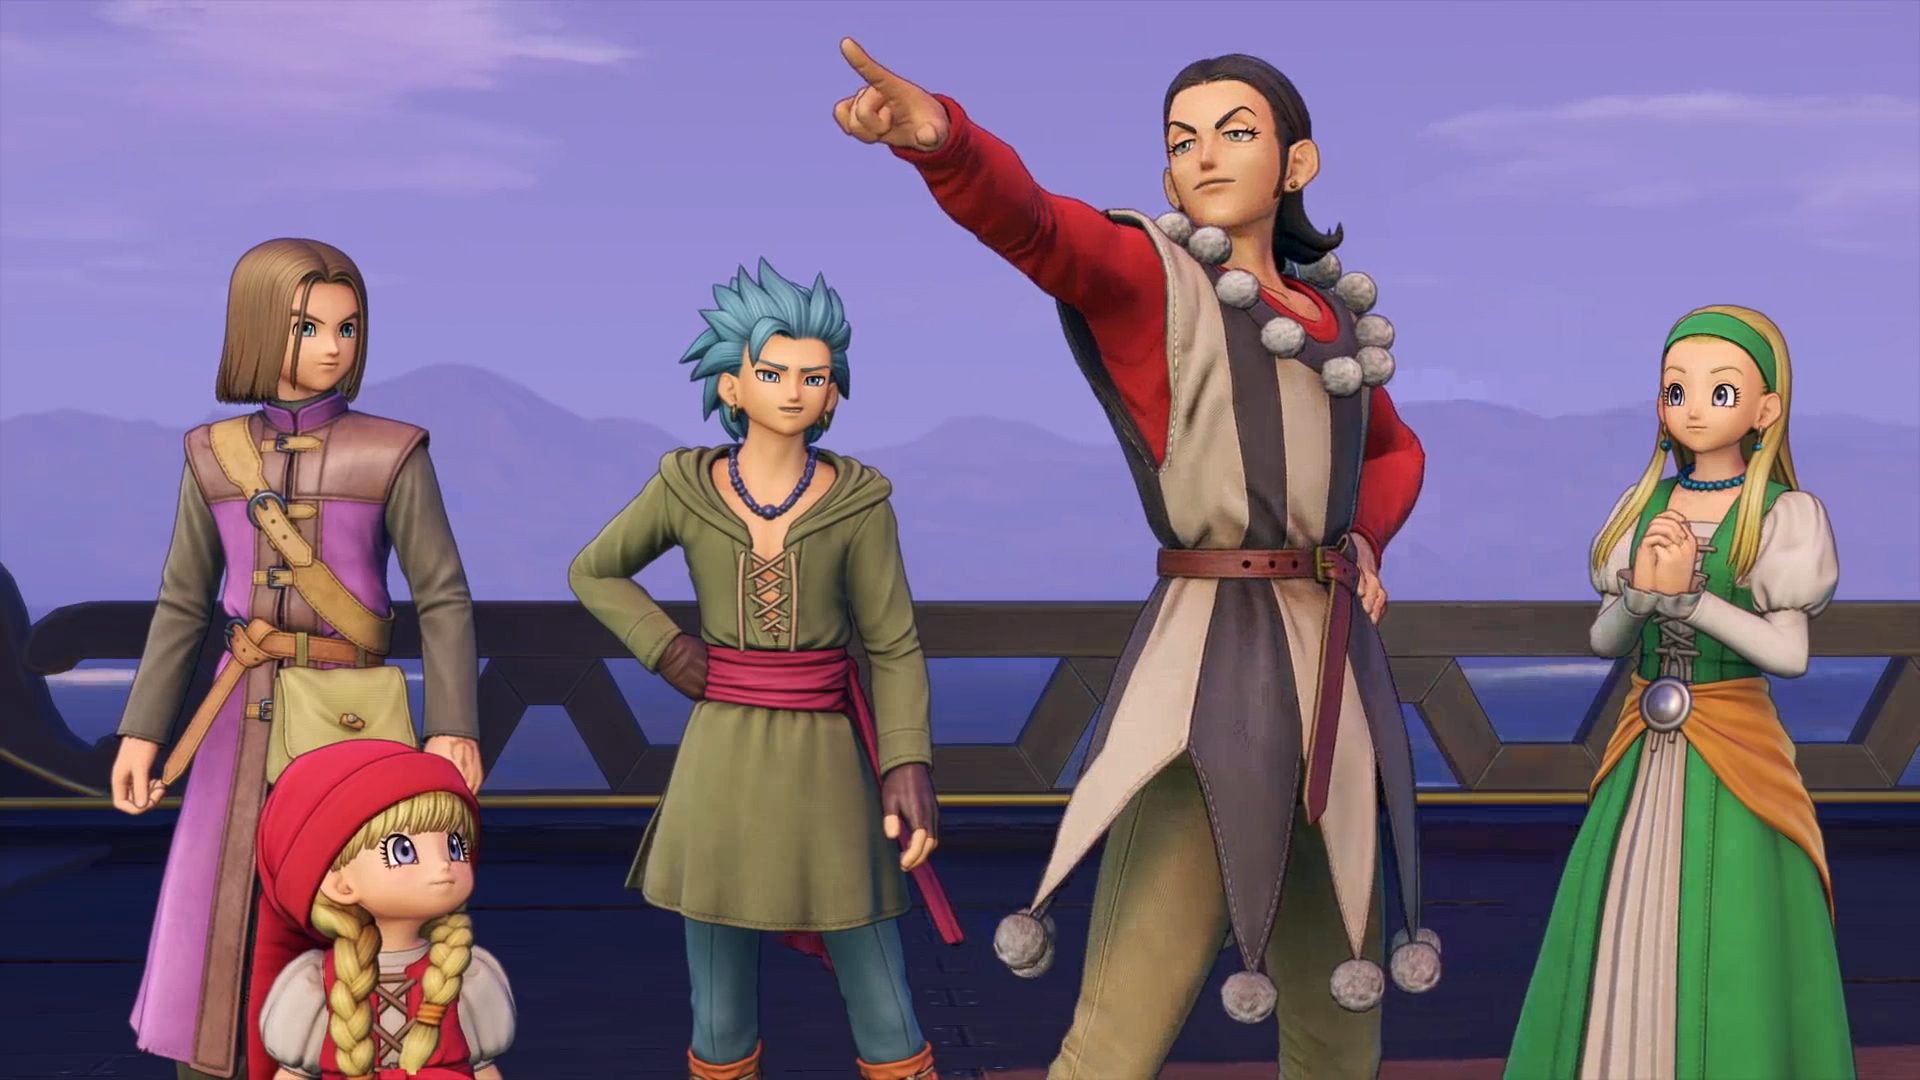 Dragon Quest 11 Crack Download Full Version PC Game With Product Key